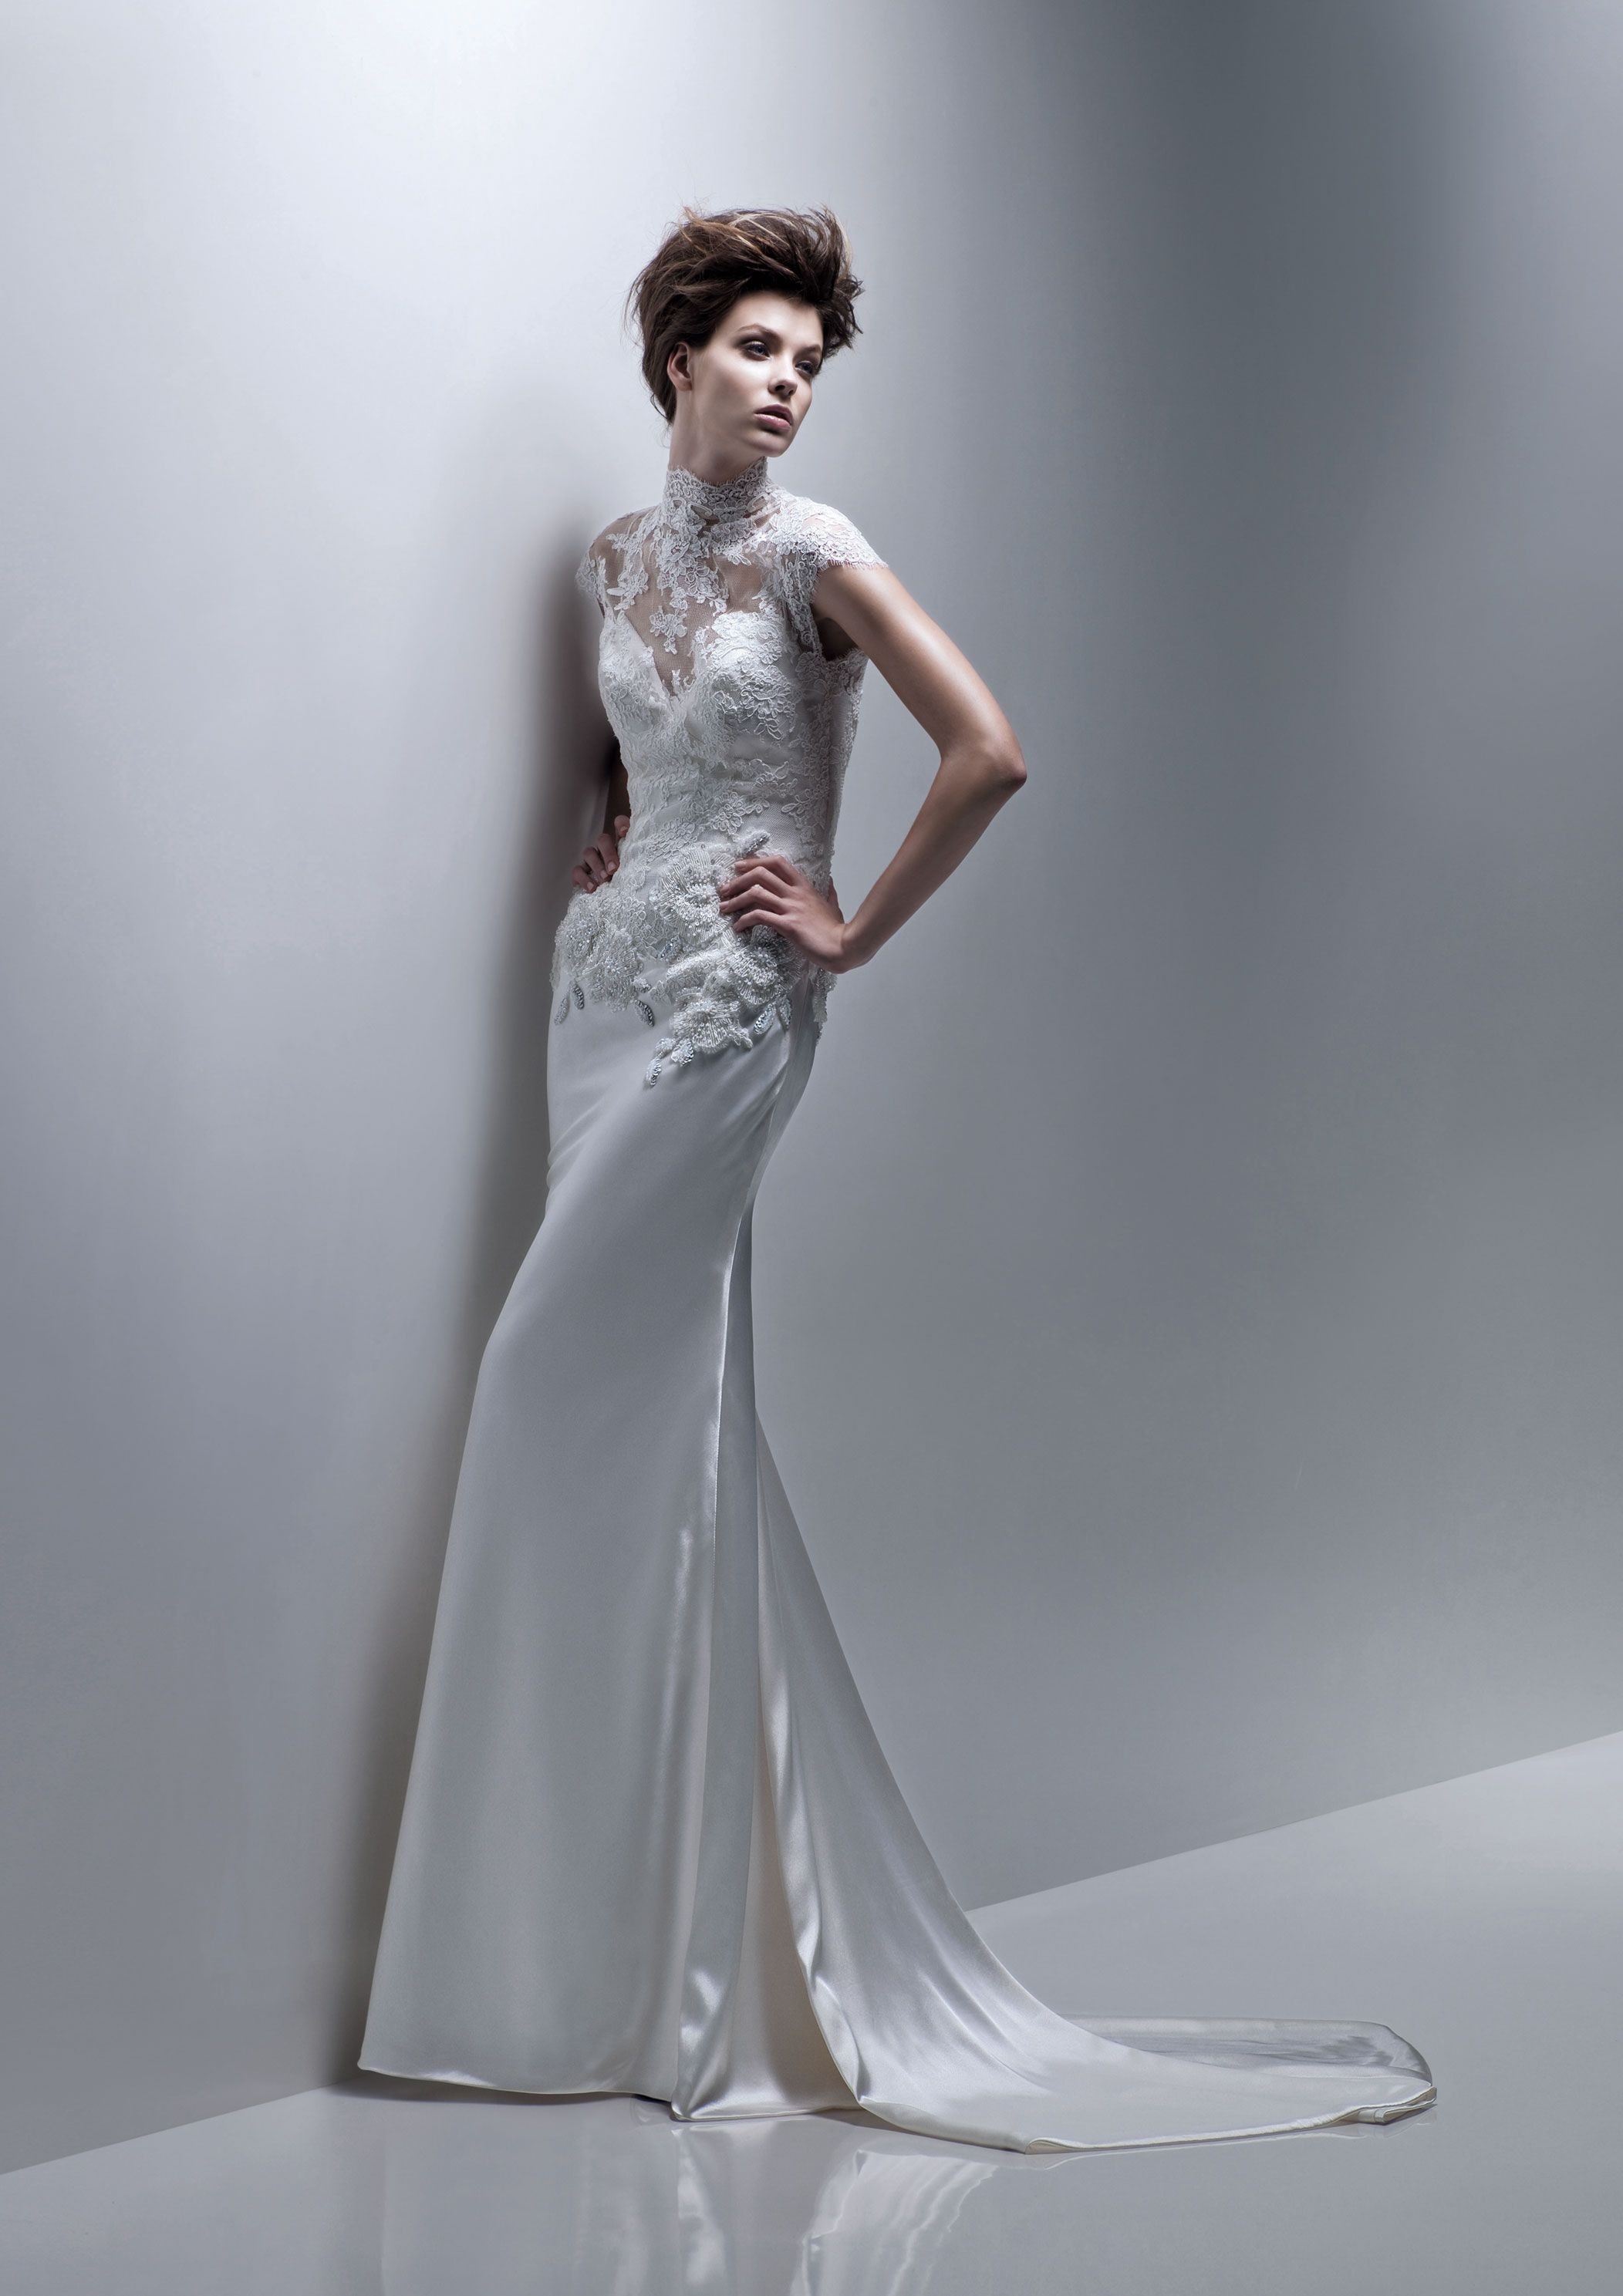 Sheath silk gown with lace bodice illusion cap sleeves and high